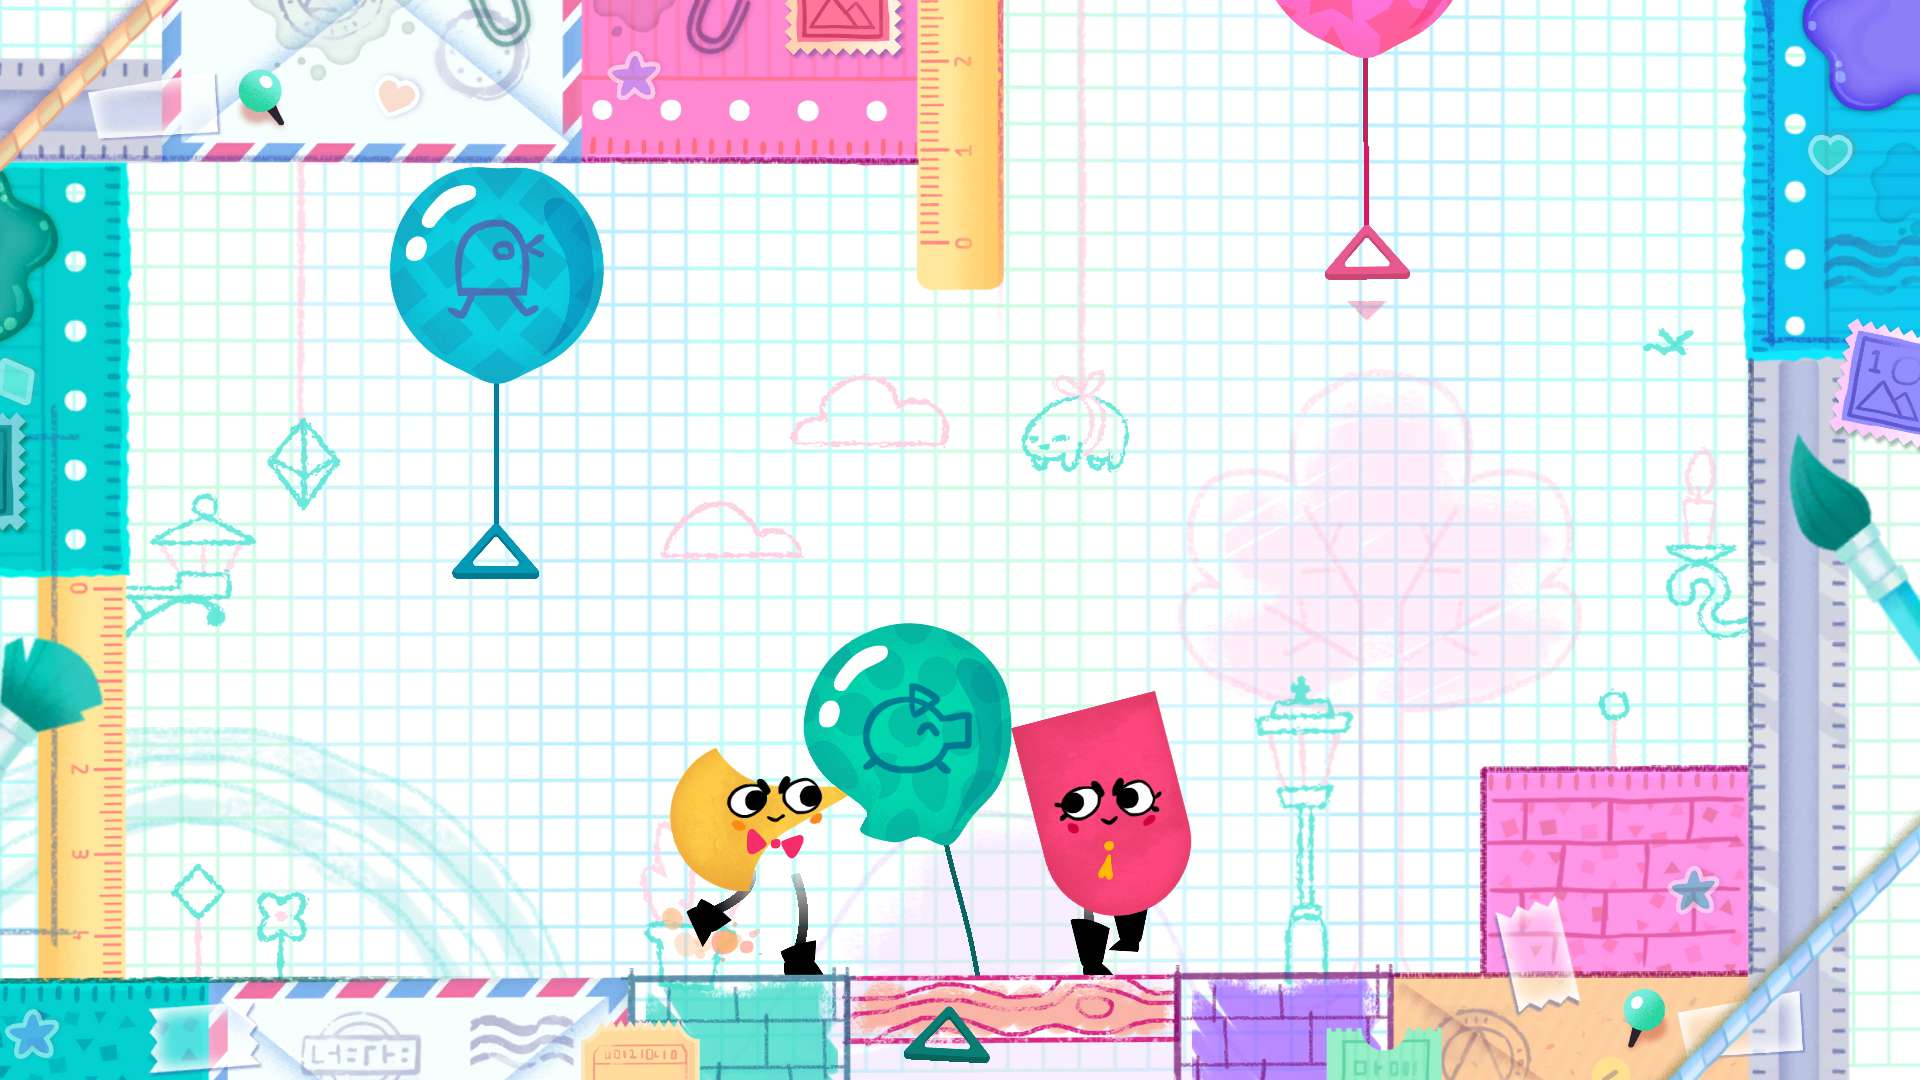 Snipperclips: Cut it out, together! #8